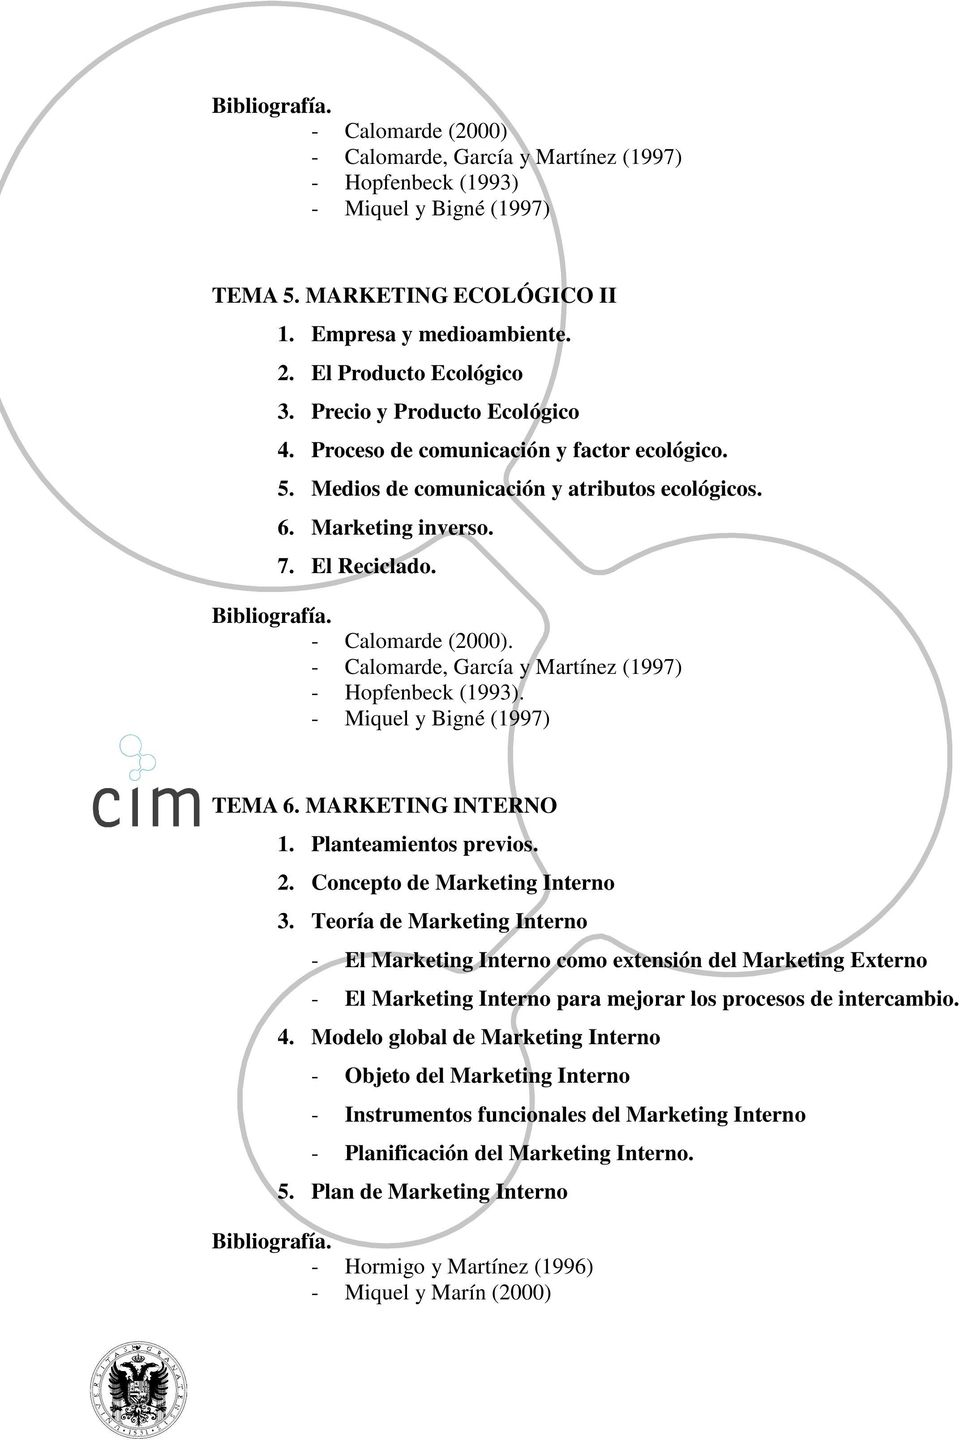 - Calomarde, García y Martínez (1997) - Hopfenbeck (1993). - Miquel y Bigné (1997) TEMA 6. MARKETING INTERNO 1. Planteamientos previos. 2. Concepto de Marketing Interno 3.